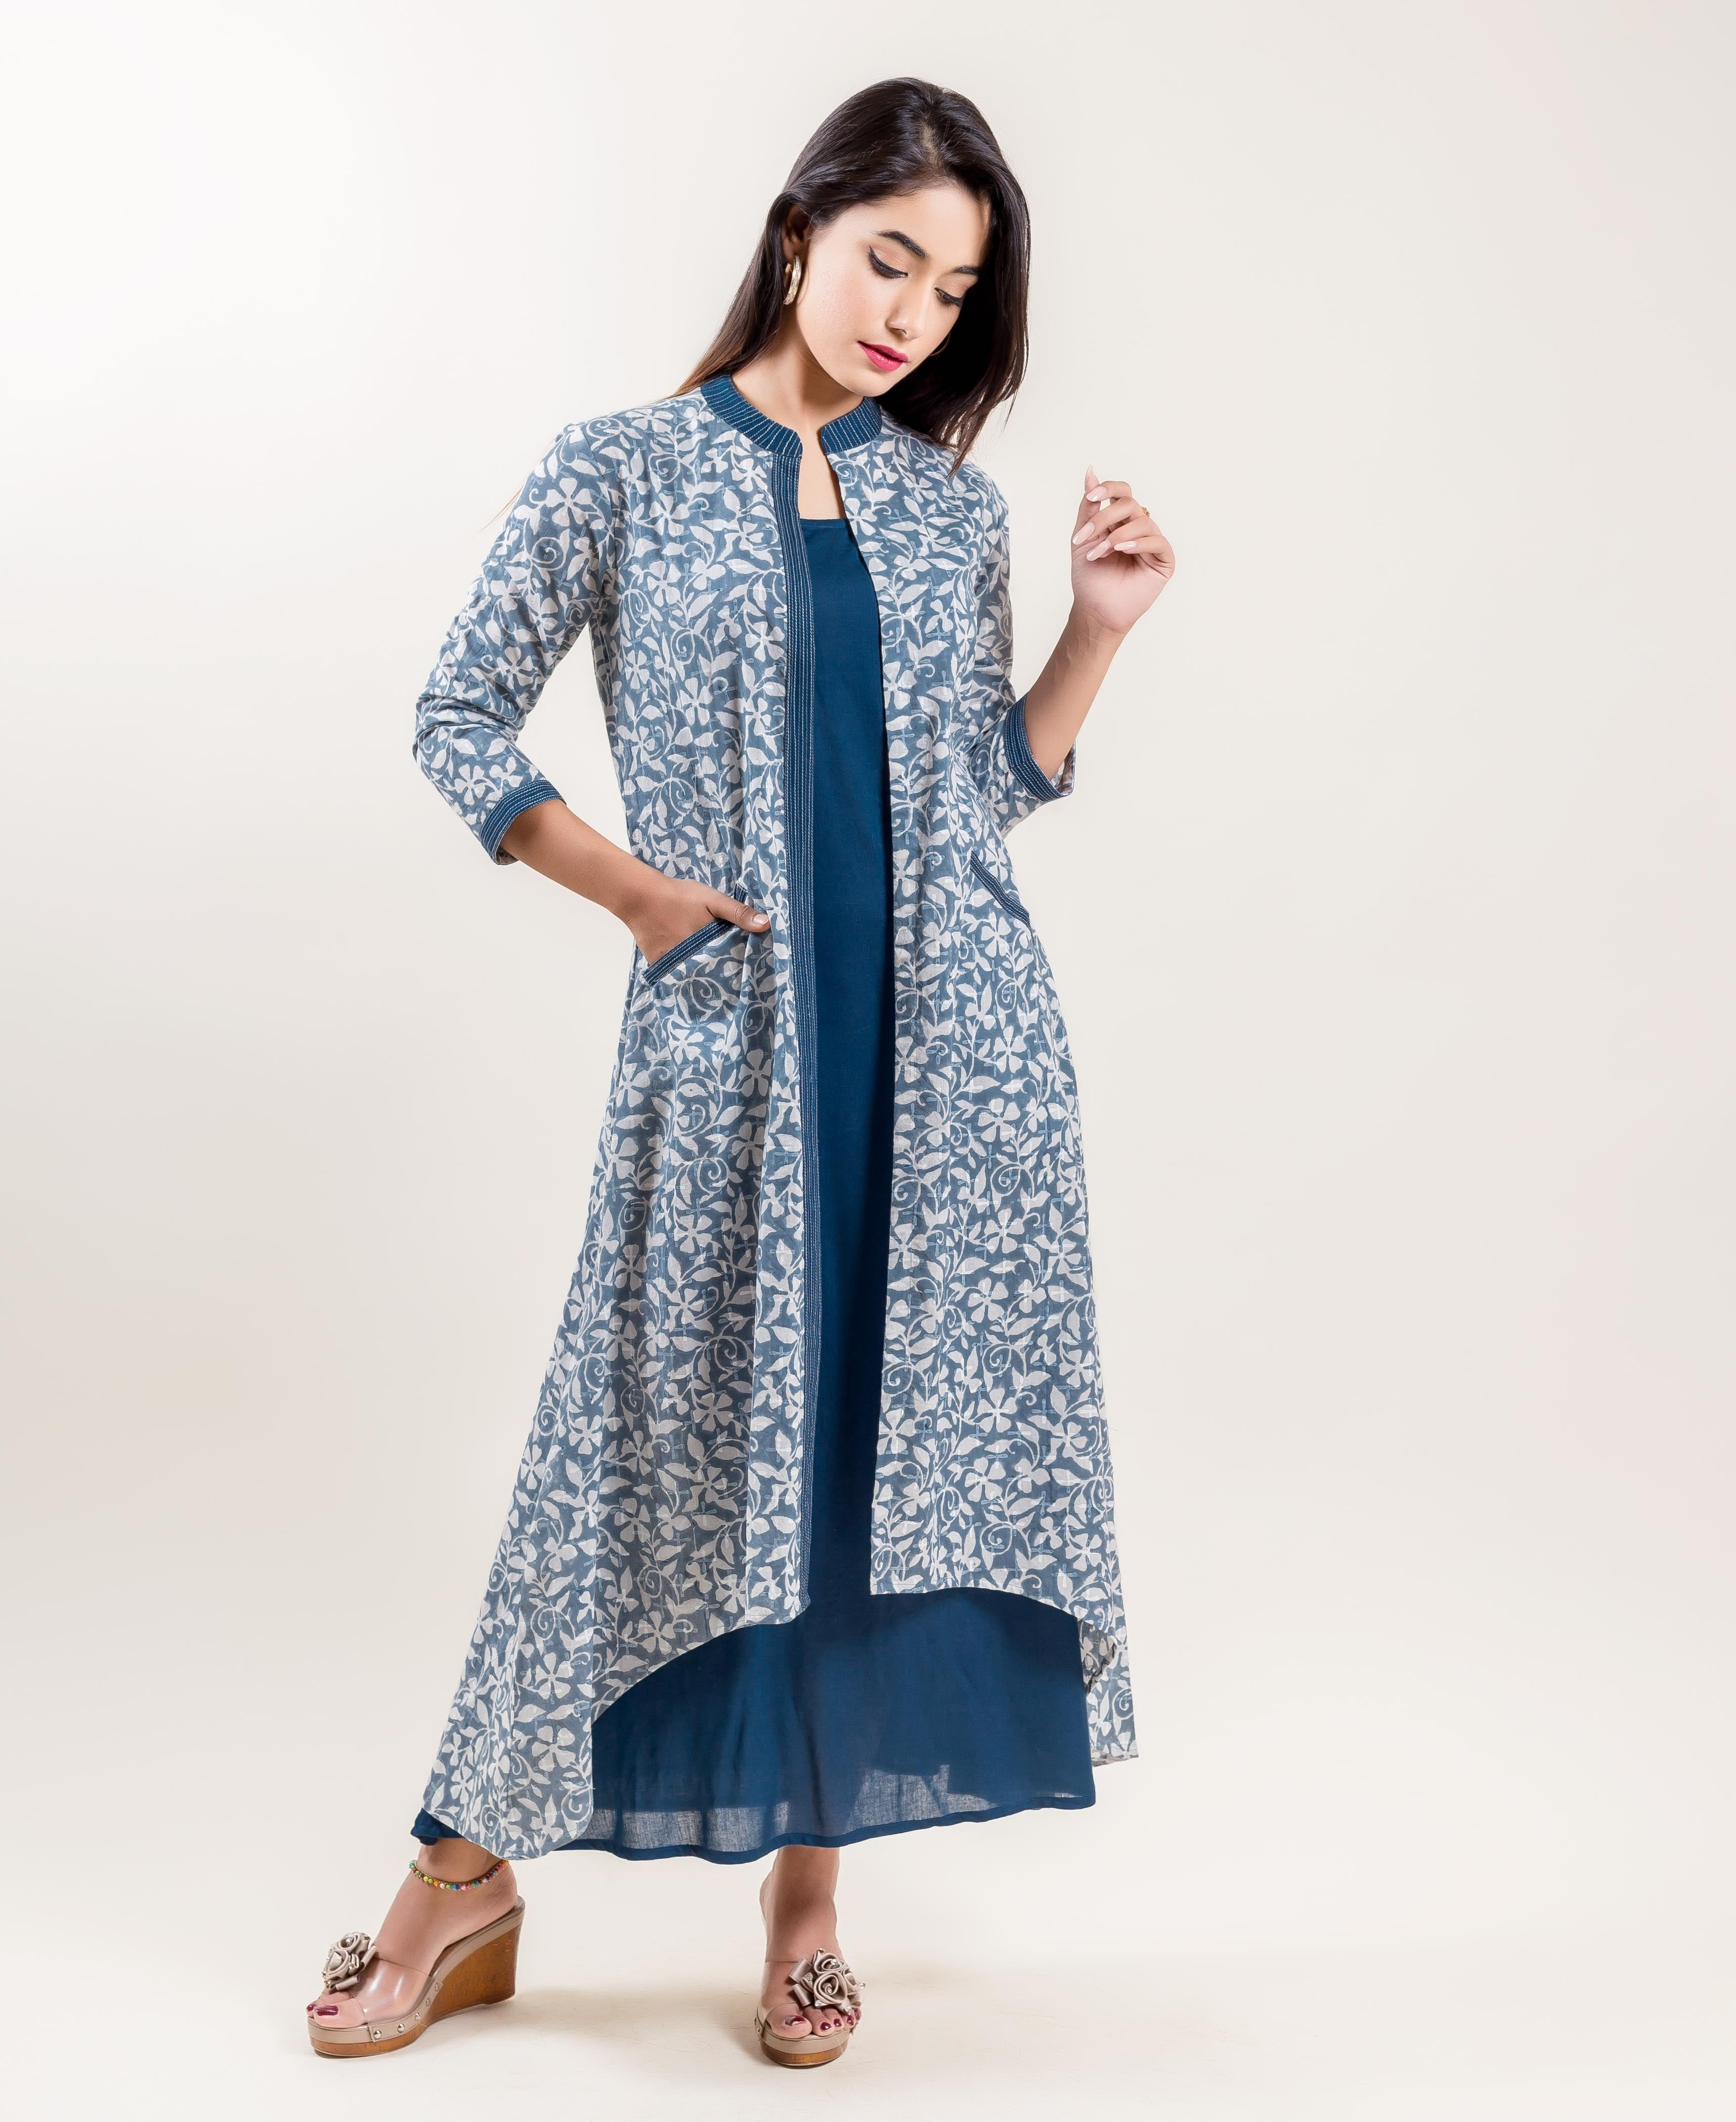 d04cd185917 Double Layered Asymmetrical Long Indowestern Dress In Grey And Blue ...